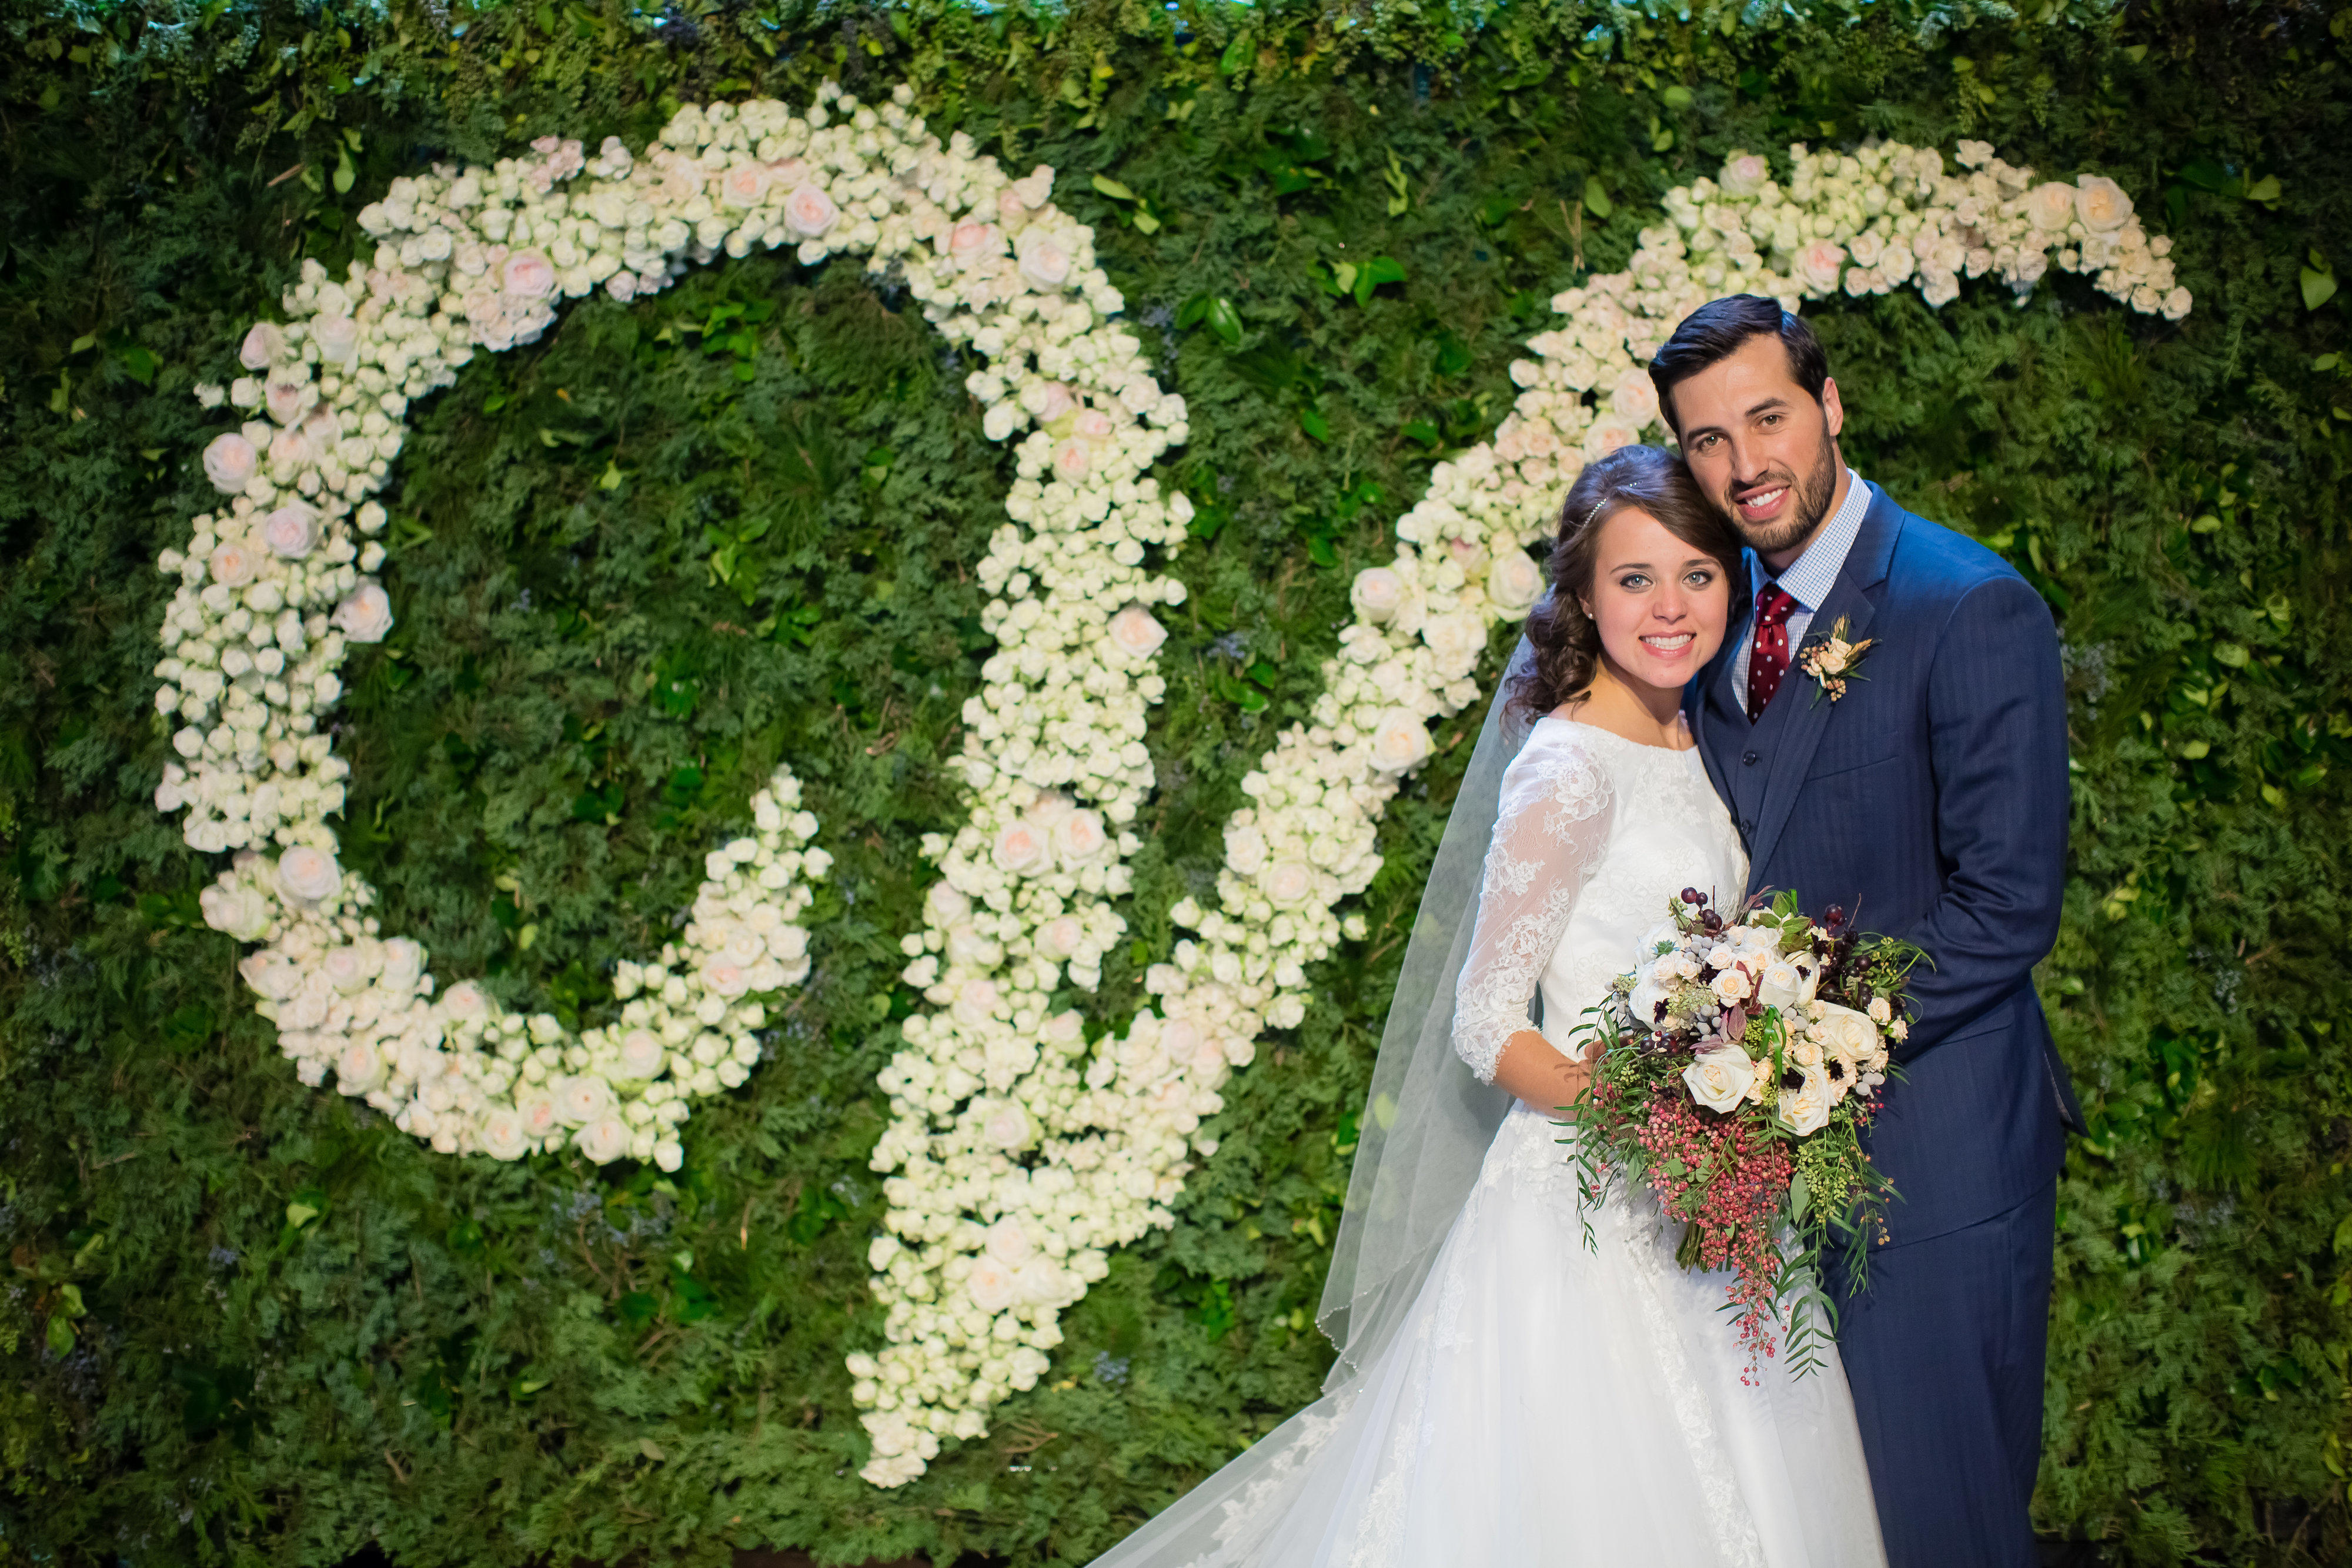 21 Duggar Wedding Ideas We Want To Steal For Our Special Day Cafemom